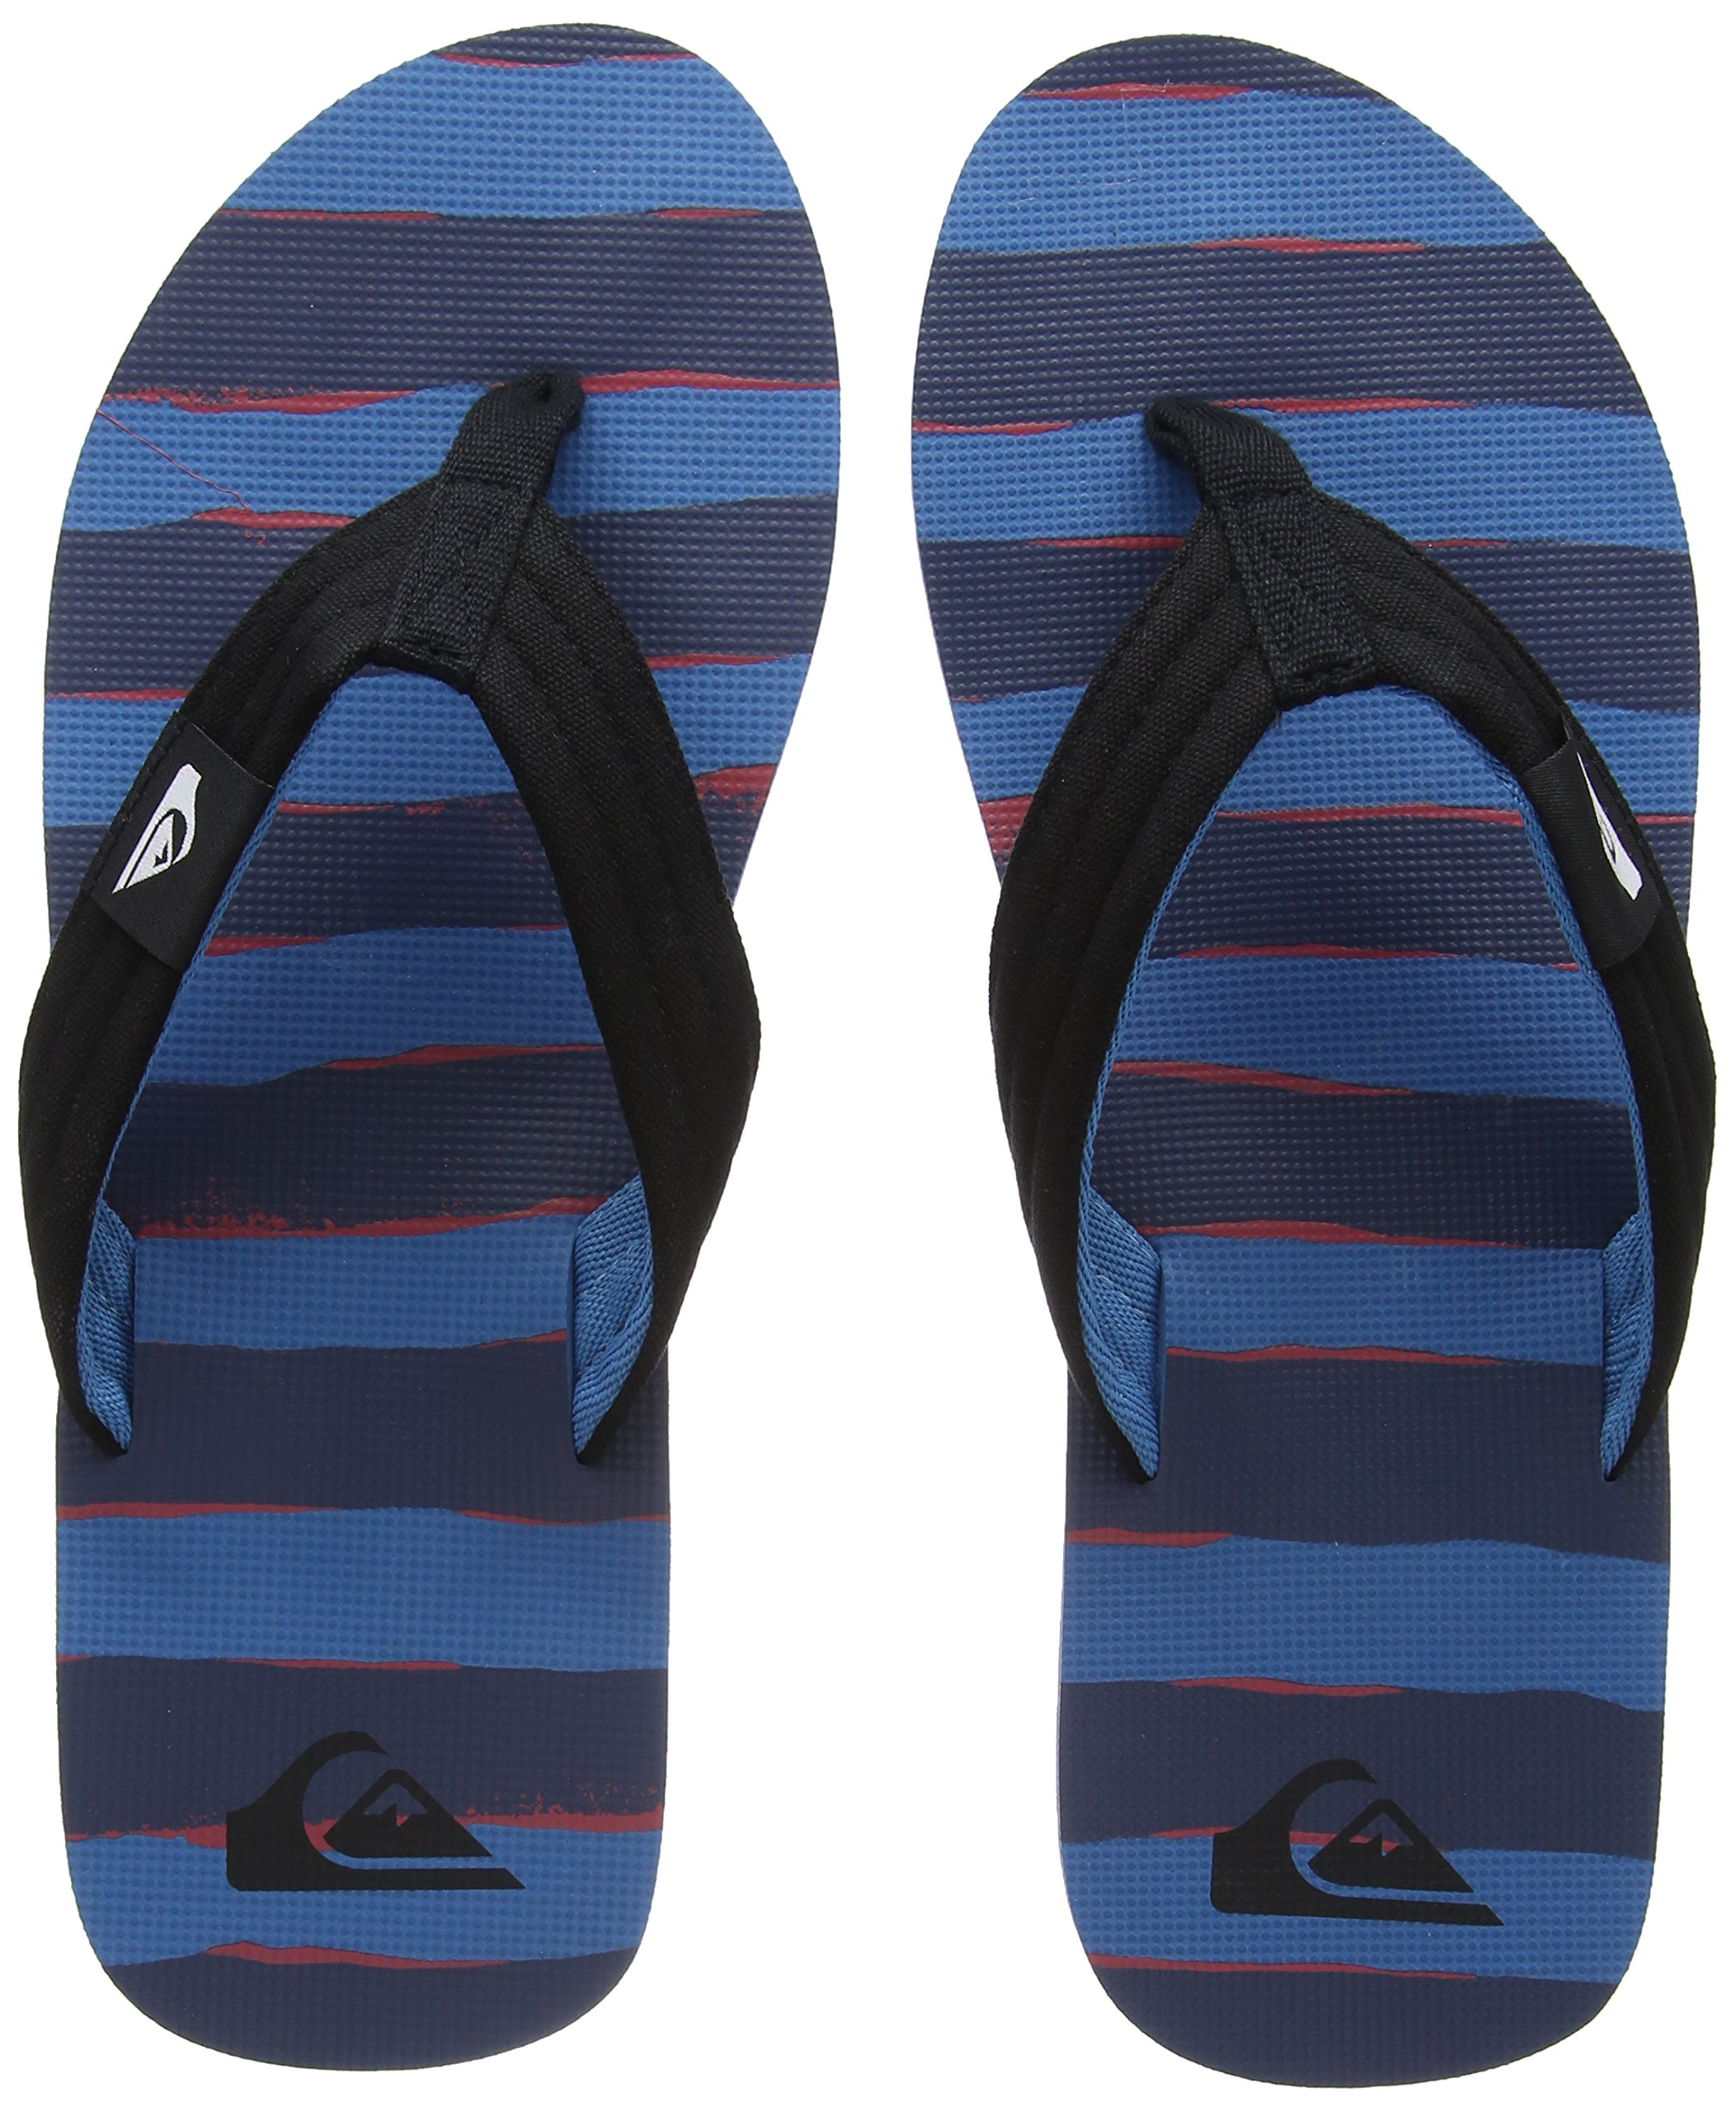 Quiksilver Molokai Layback Flip Flops - Black/Red / Blue UK 9